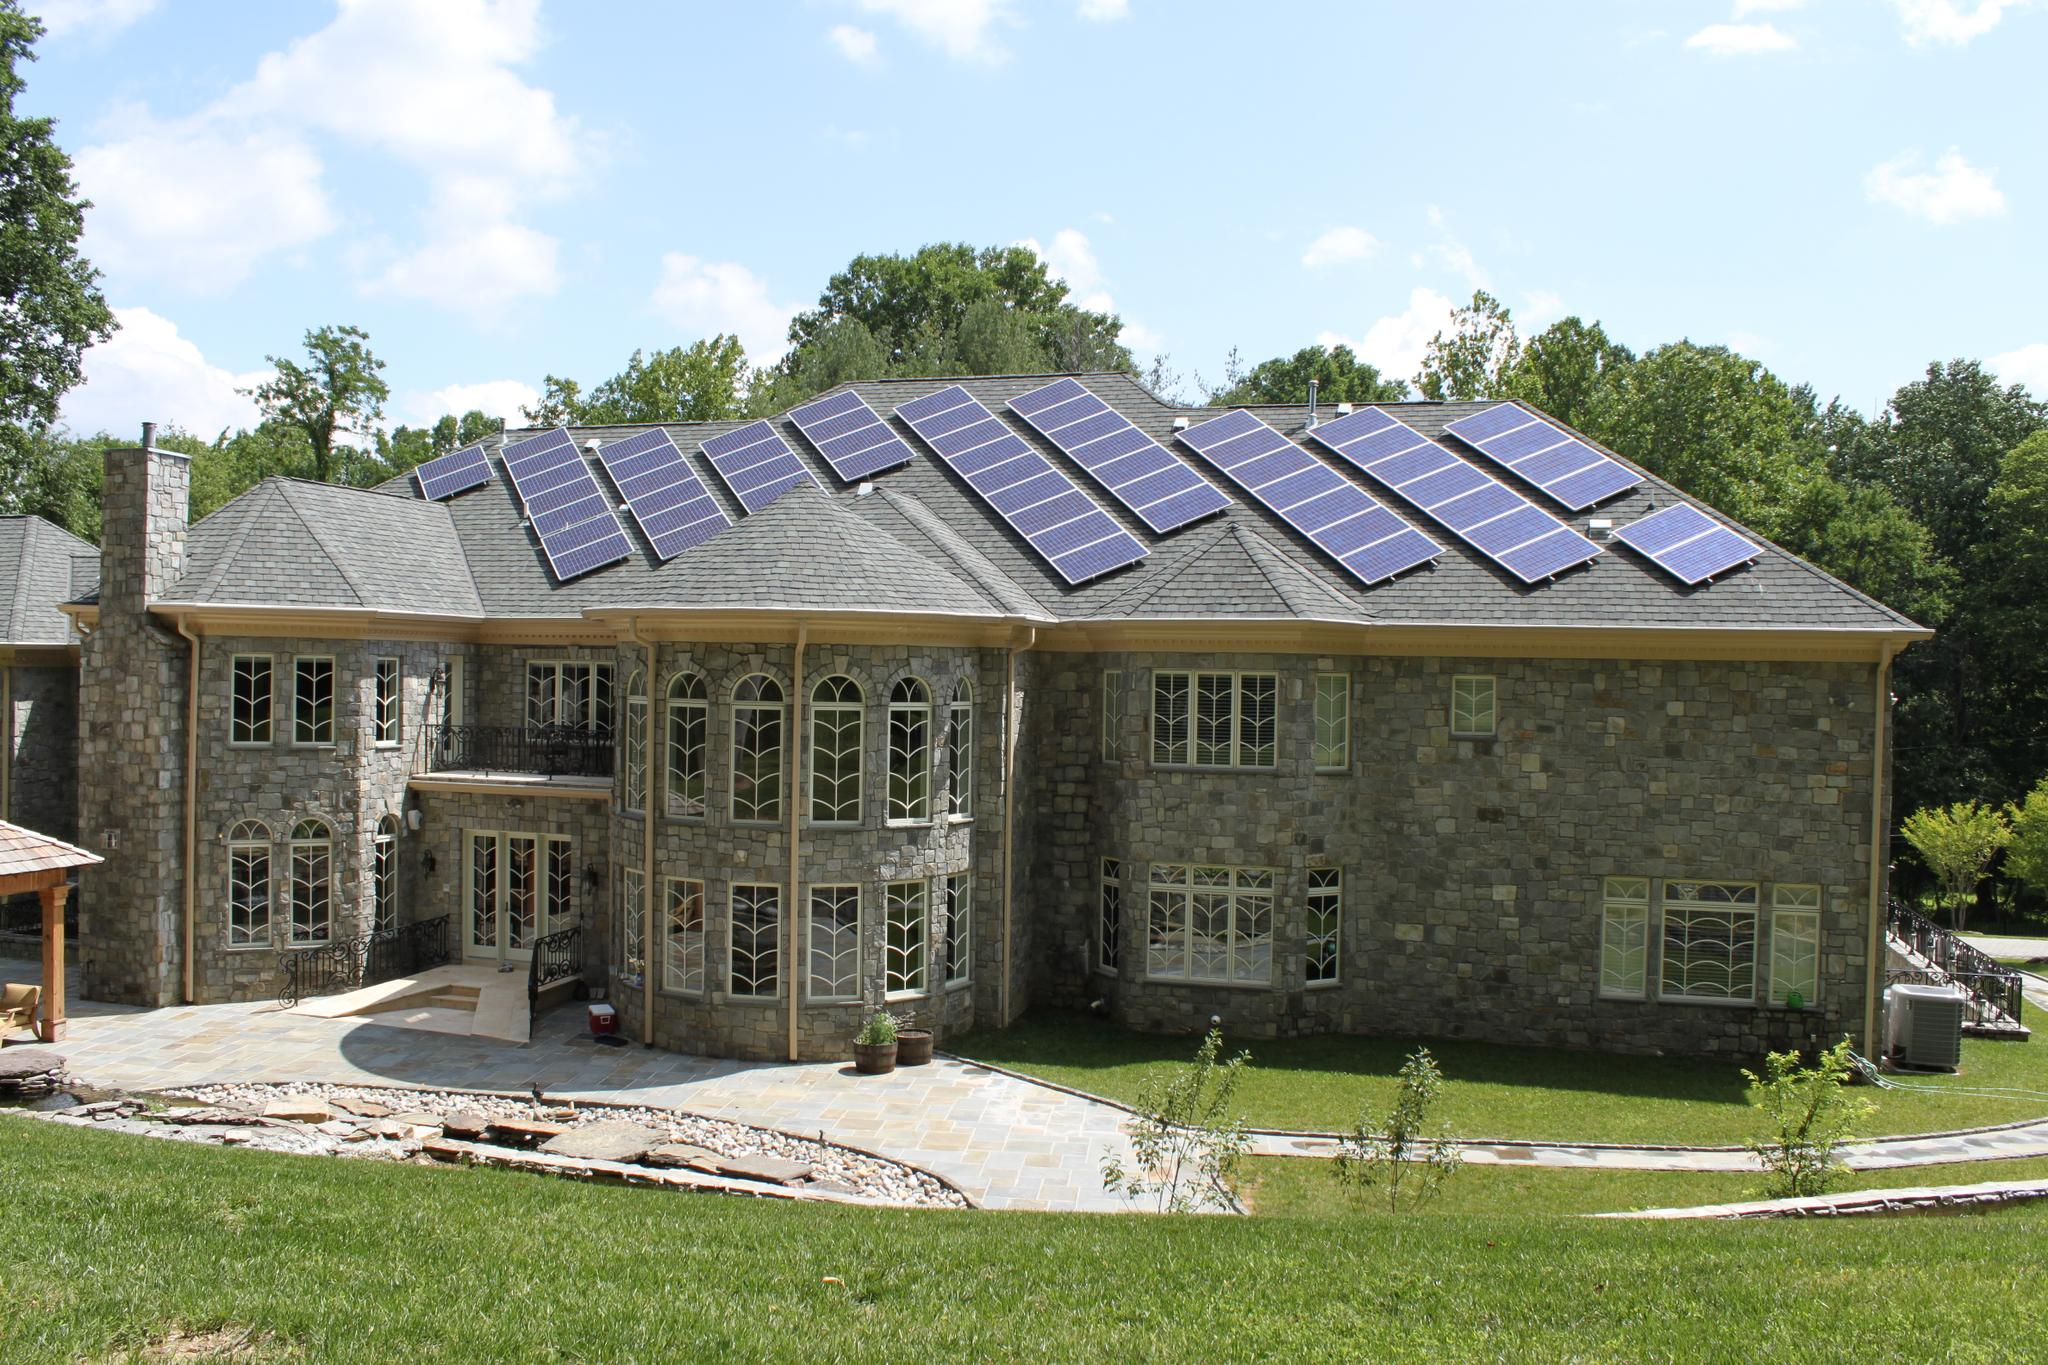 Greenbrilliance Llc Profile And Reviews 2020 Energysage